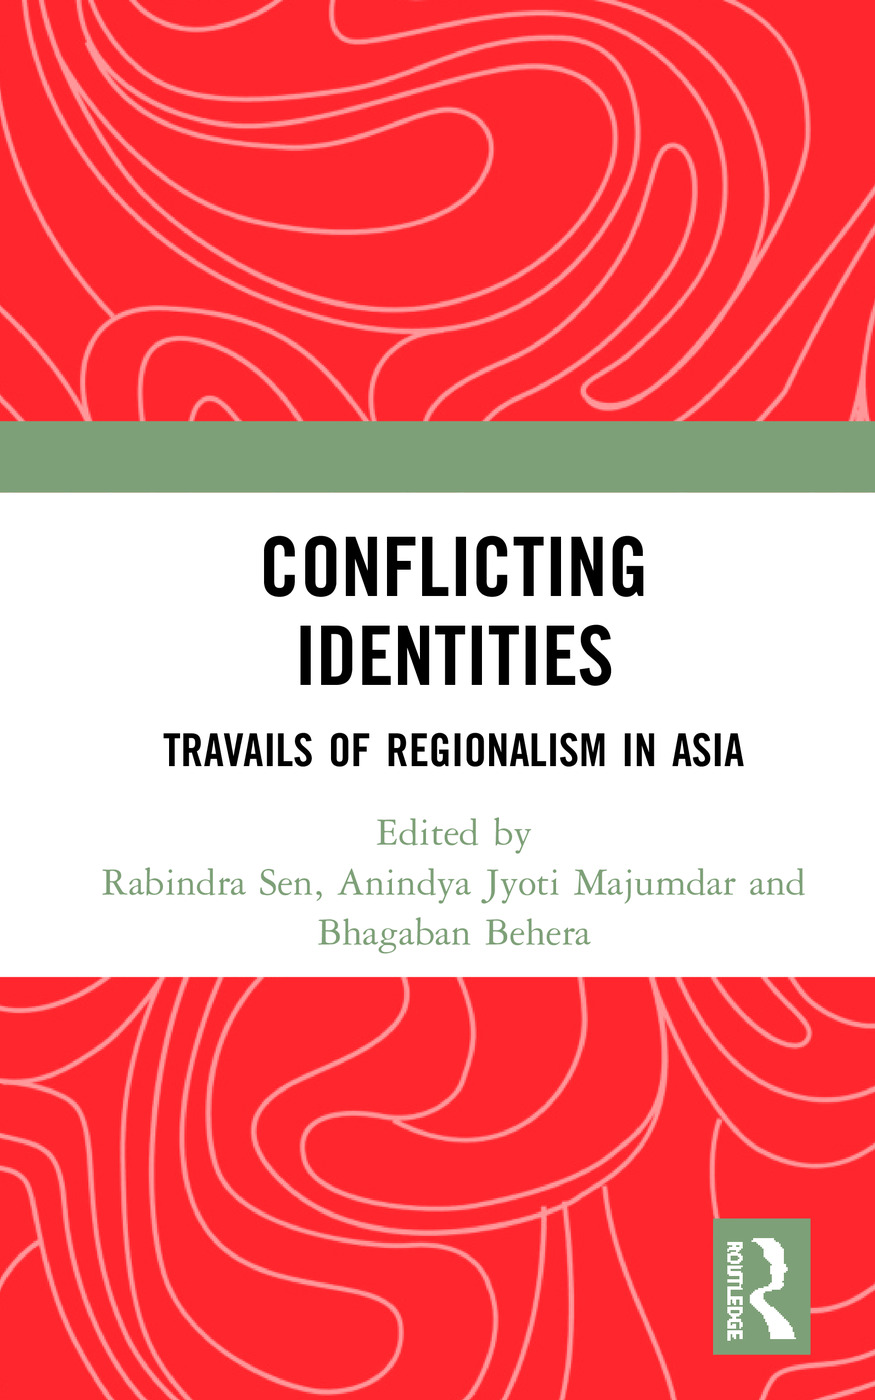 Conflicting Identities: Travails of Regionalism in Asia book cover